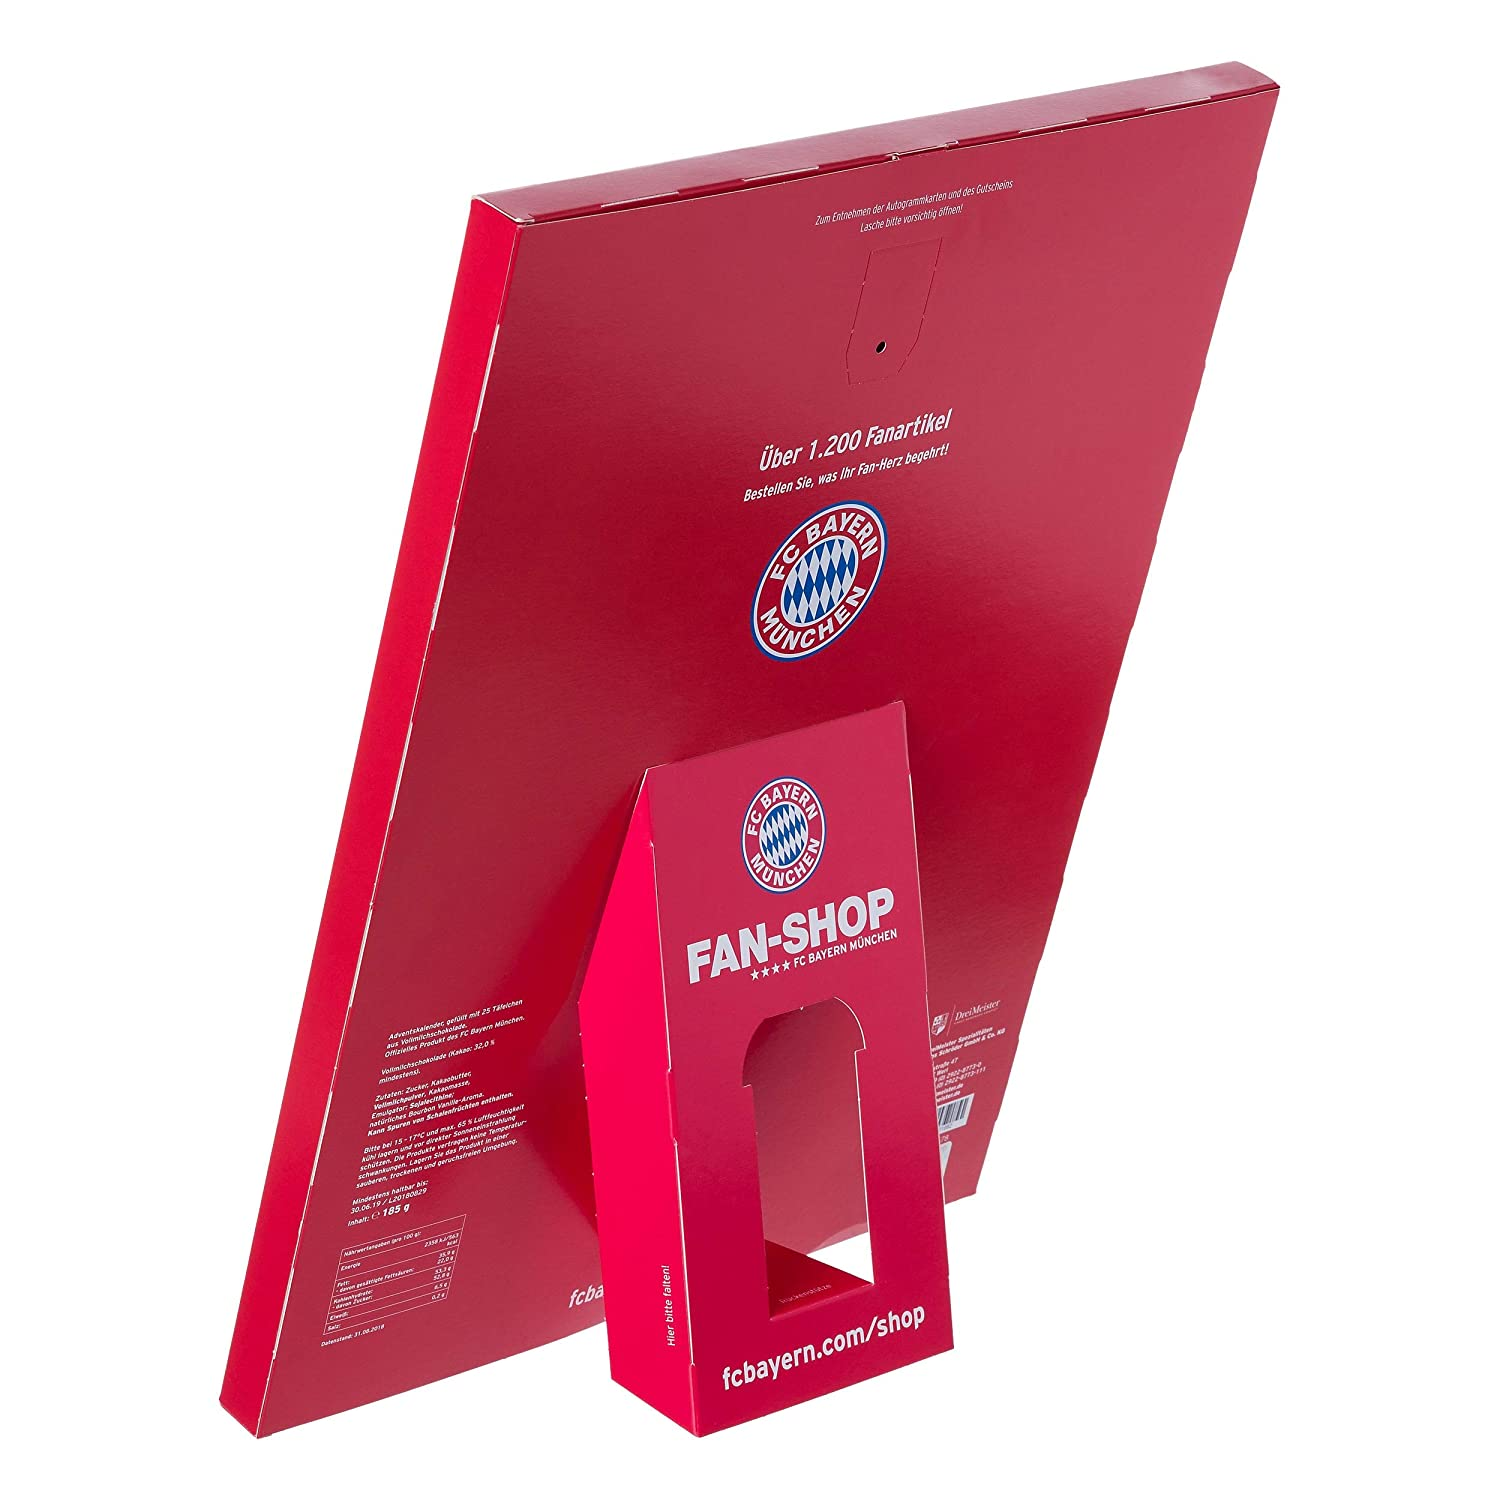 FC Bayern Munich XXL Advent Calendar Filled with Autograph Cards and 25 Milk Chocolate Bars cartoons4you